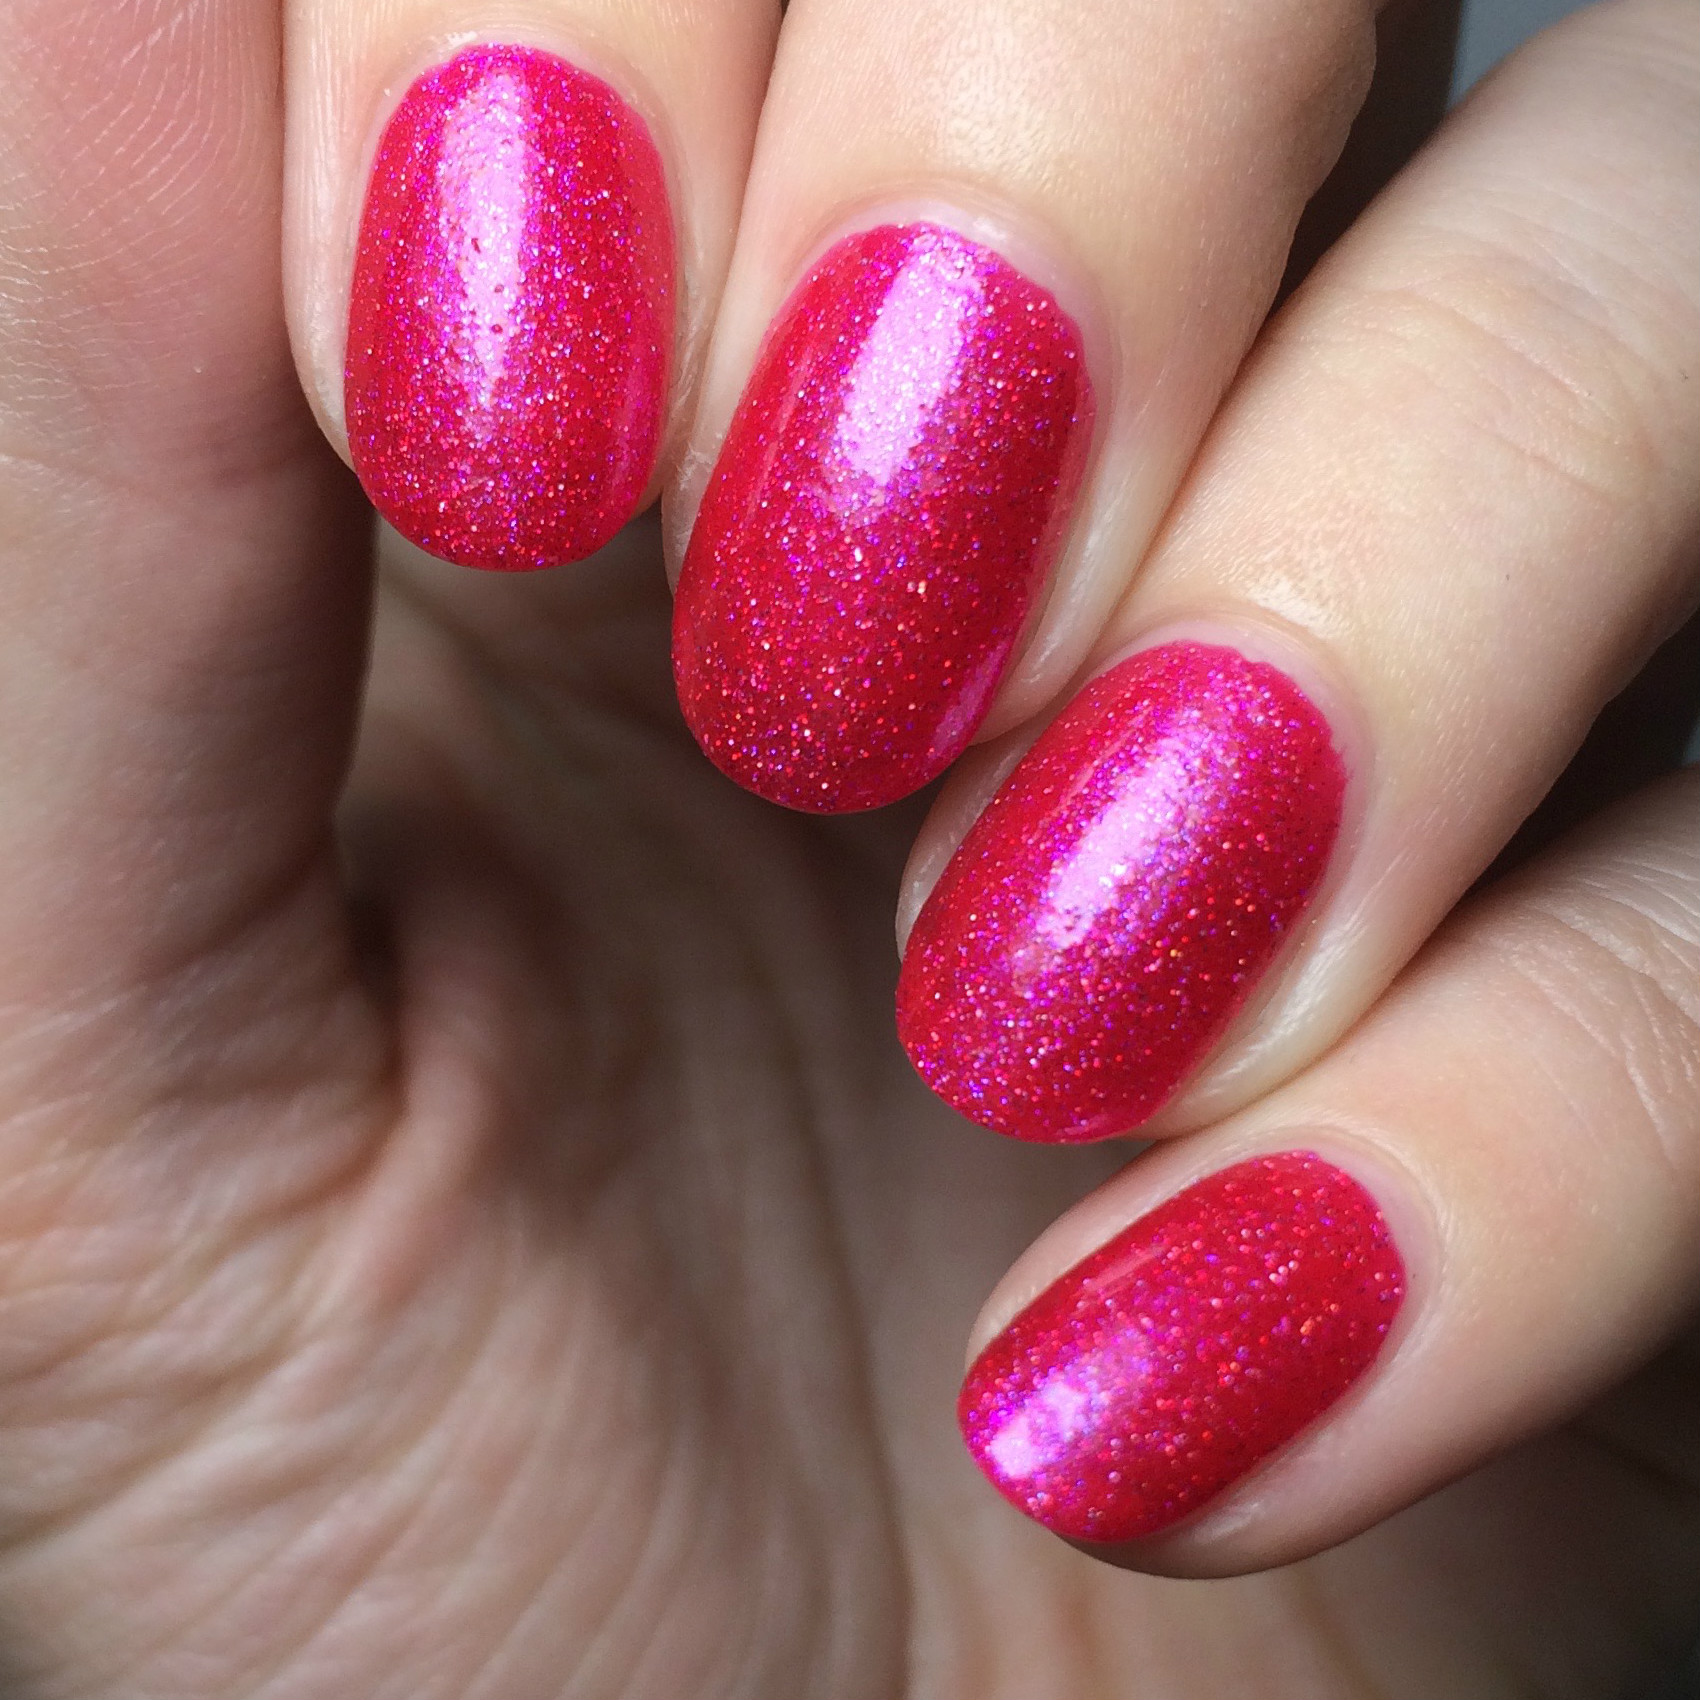 Two coats and no topcoat, just to show the coverage. Very opaque and saturate for a jelly!